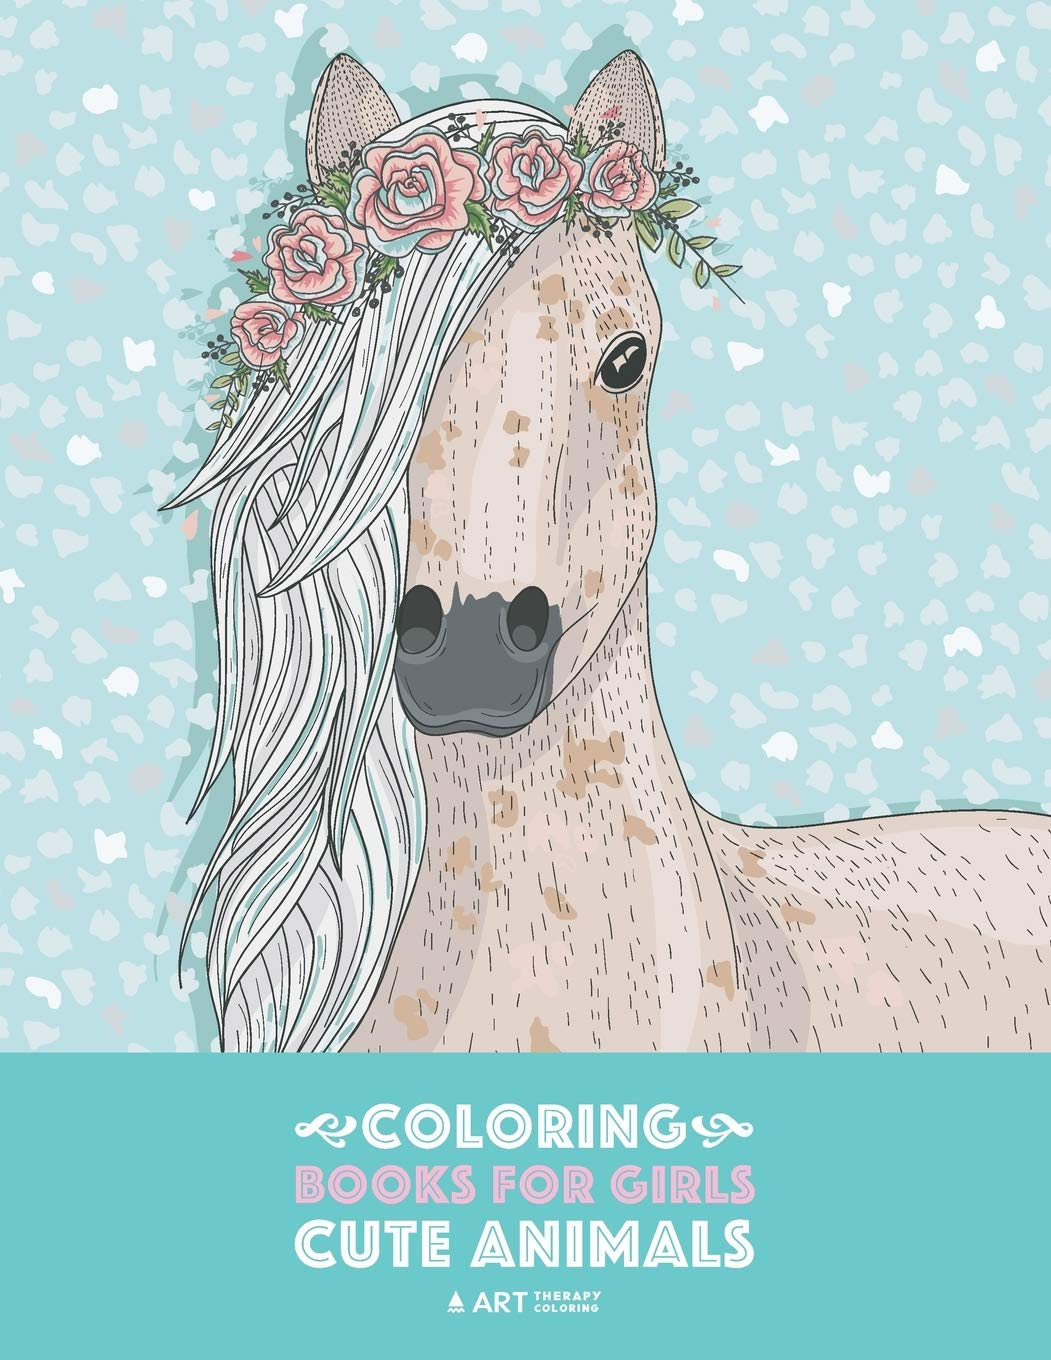 Coloring Books For Girls Cute Animals Relaxing Colouring Book For Girls Cute Horses Birds Owls Elephants Dogs Cats Turtles Bears Rabbits Ages 4 8 9 12 13 19 Art Therapy Coloring 9781641261036 Amazon Com Books